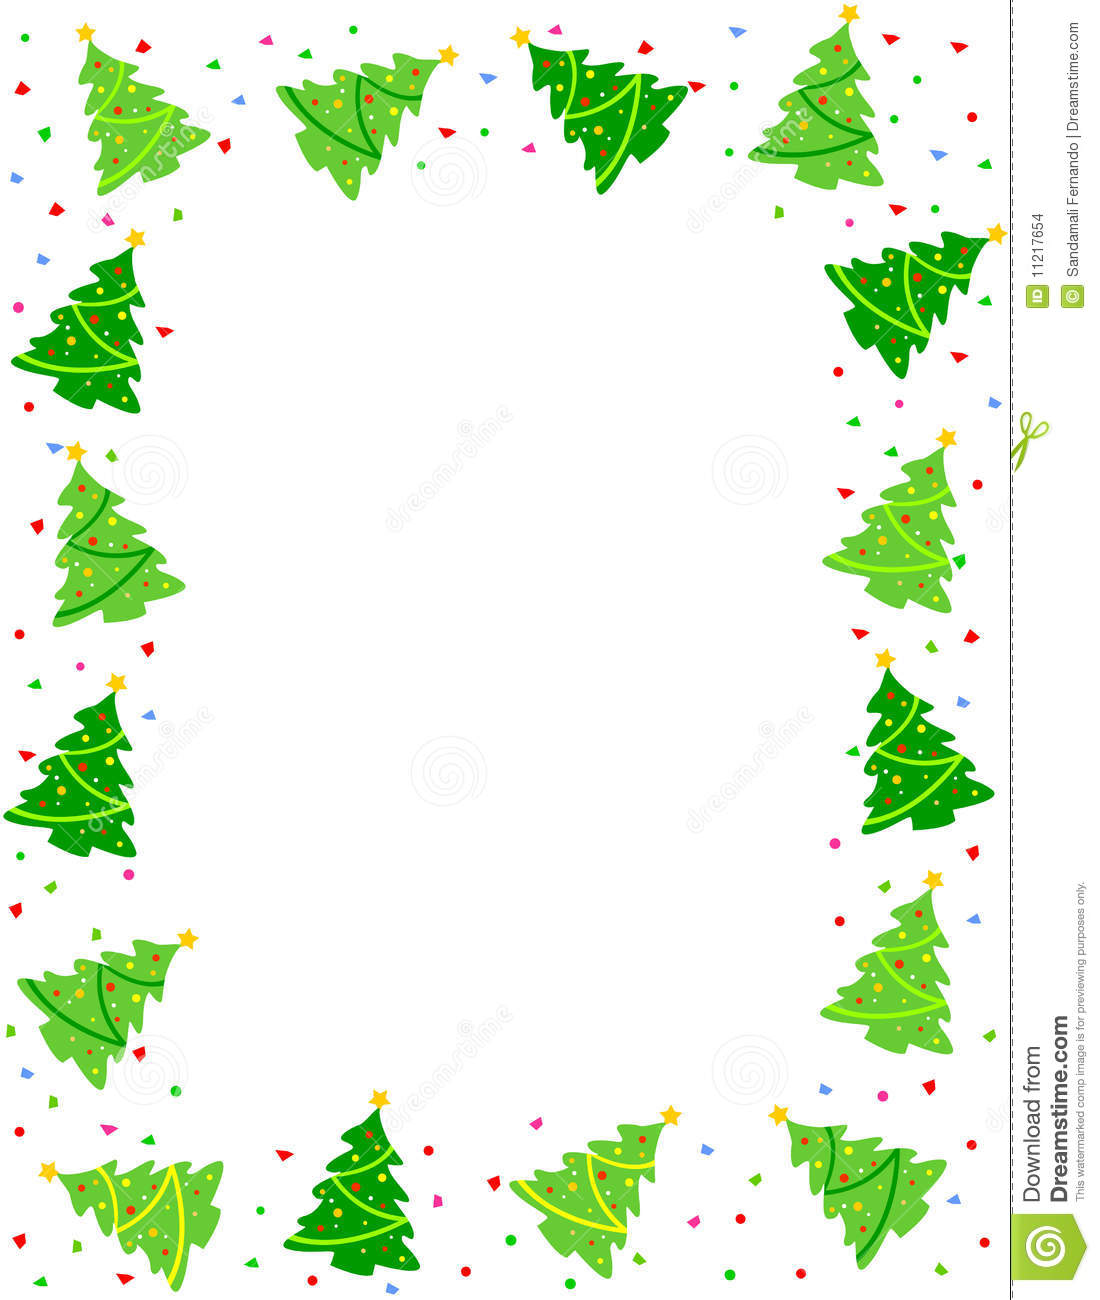 Clip art christmas borders clipart black and white stock Christmas Clip Art Borders & Christmas Clip Art Borders Clip Art ... clipart black and white stock